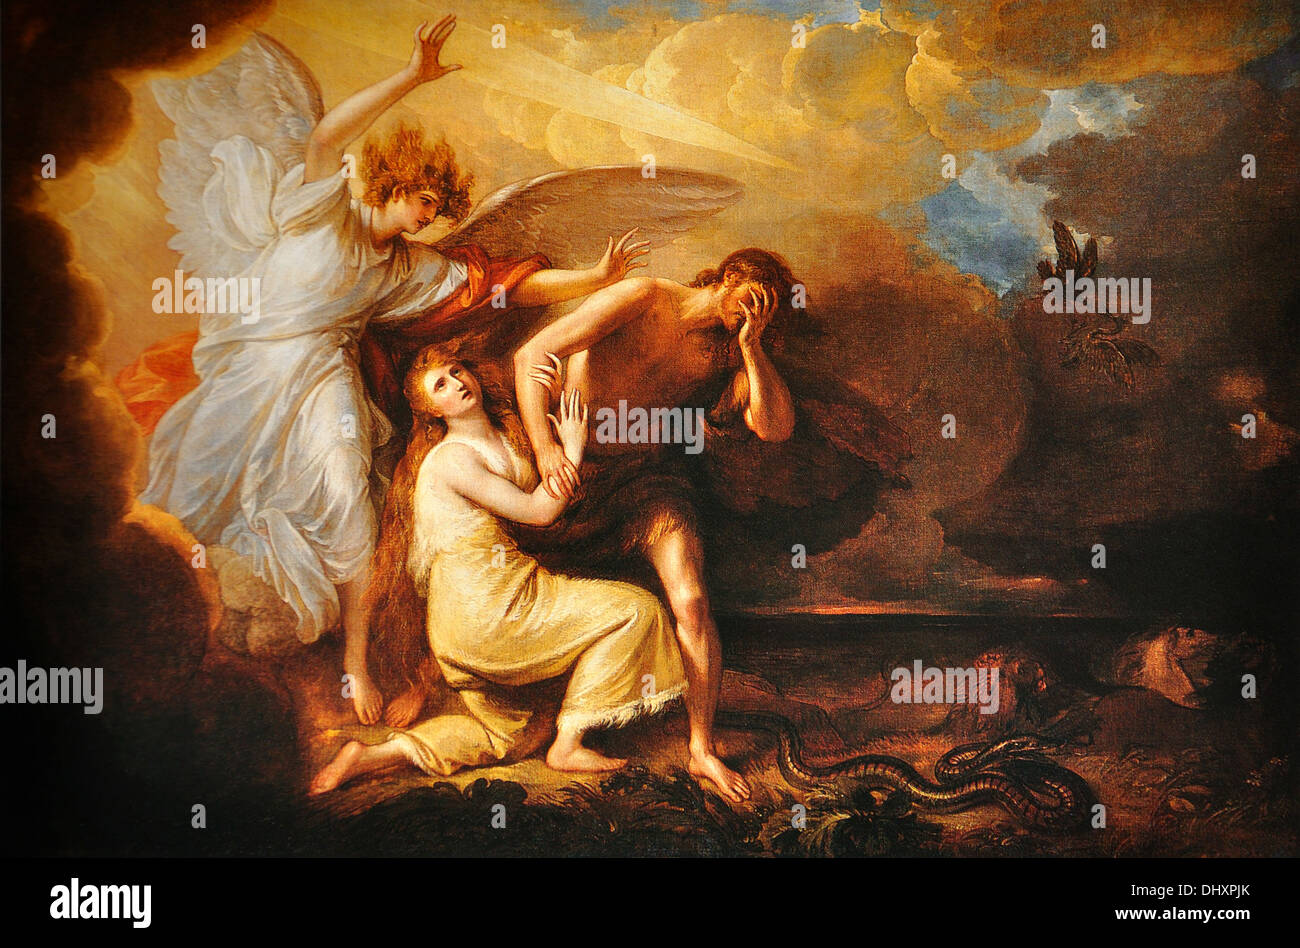 The Expulsion of Adam and Eve from Paradise - by Benjamin West, 1791 - Stock Image